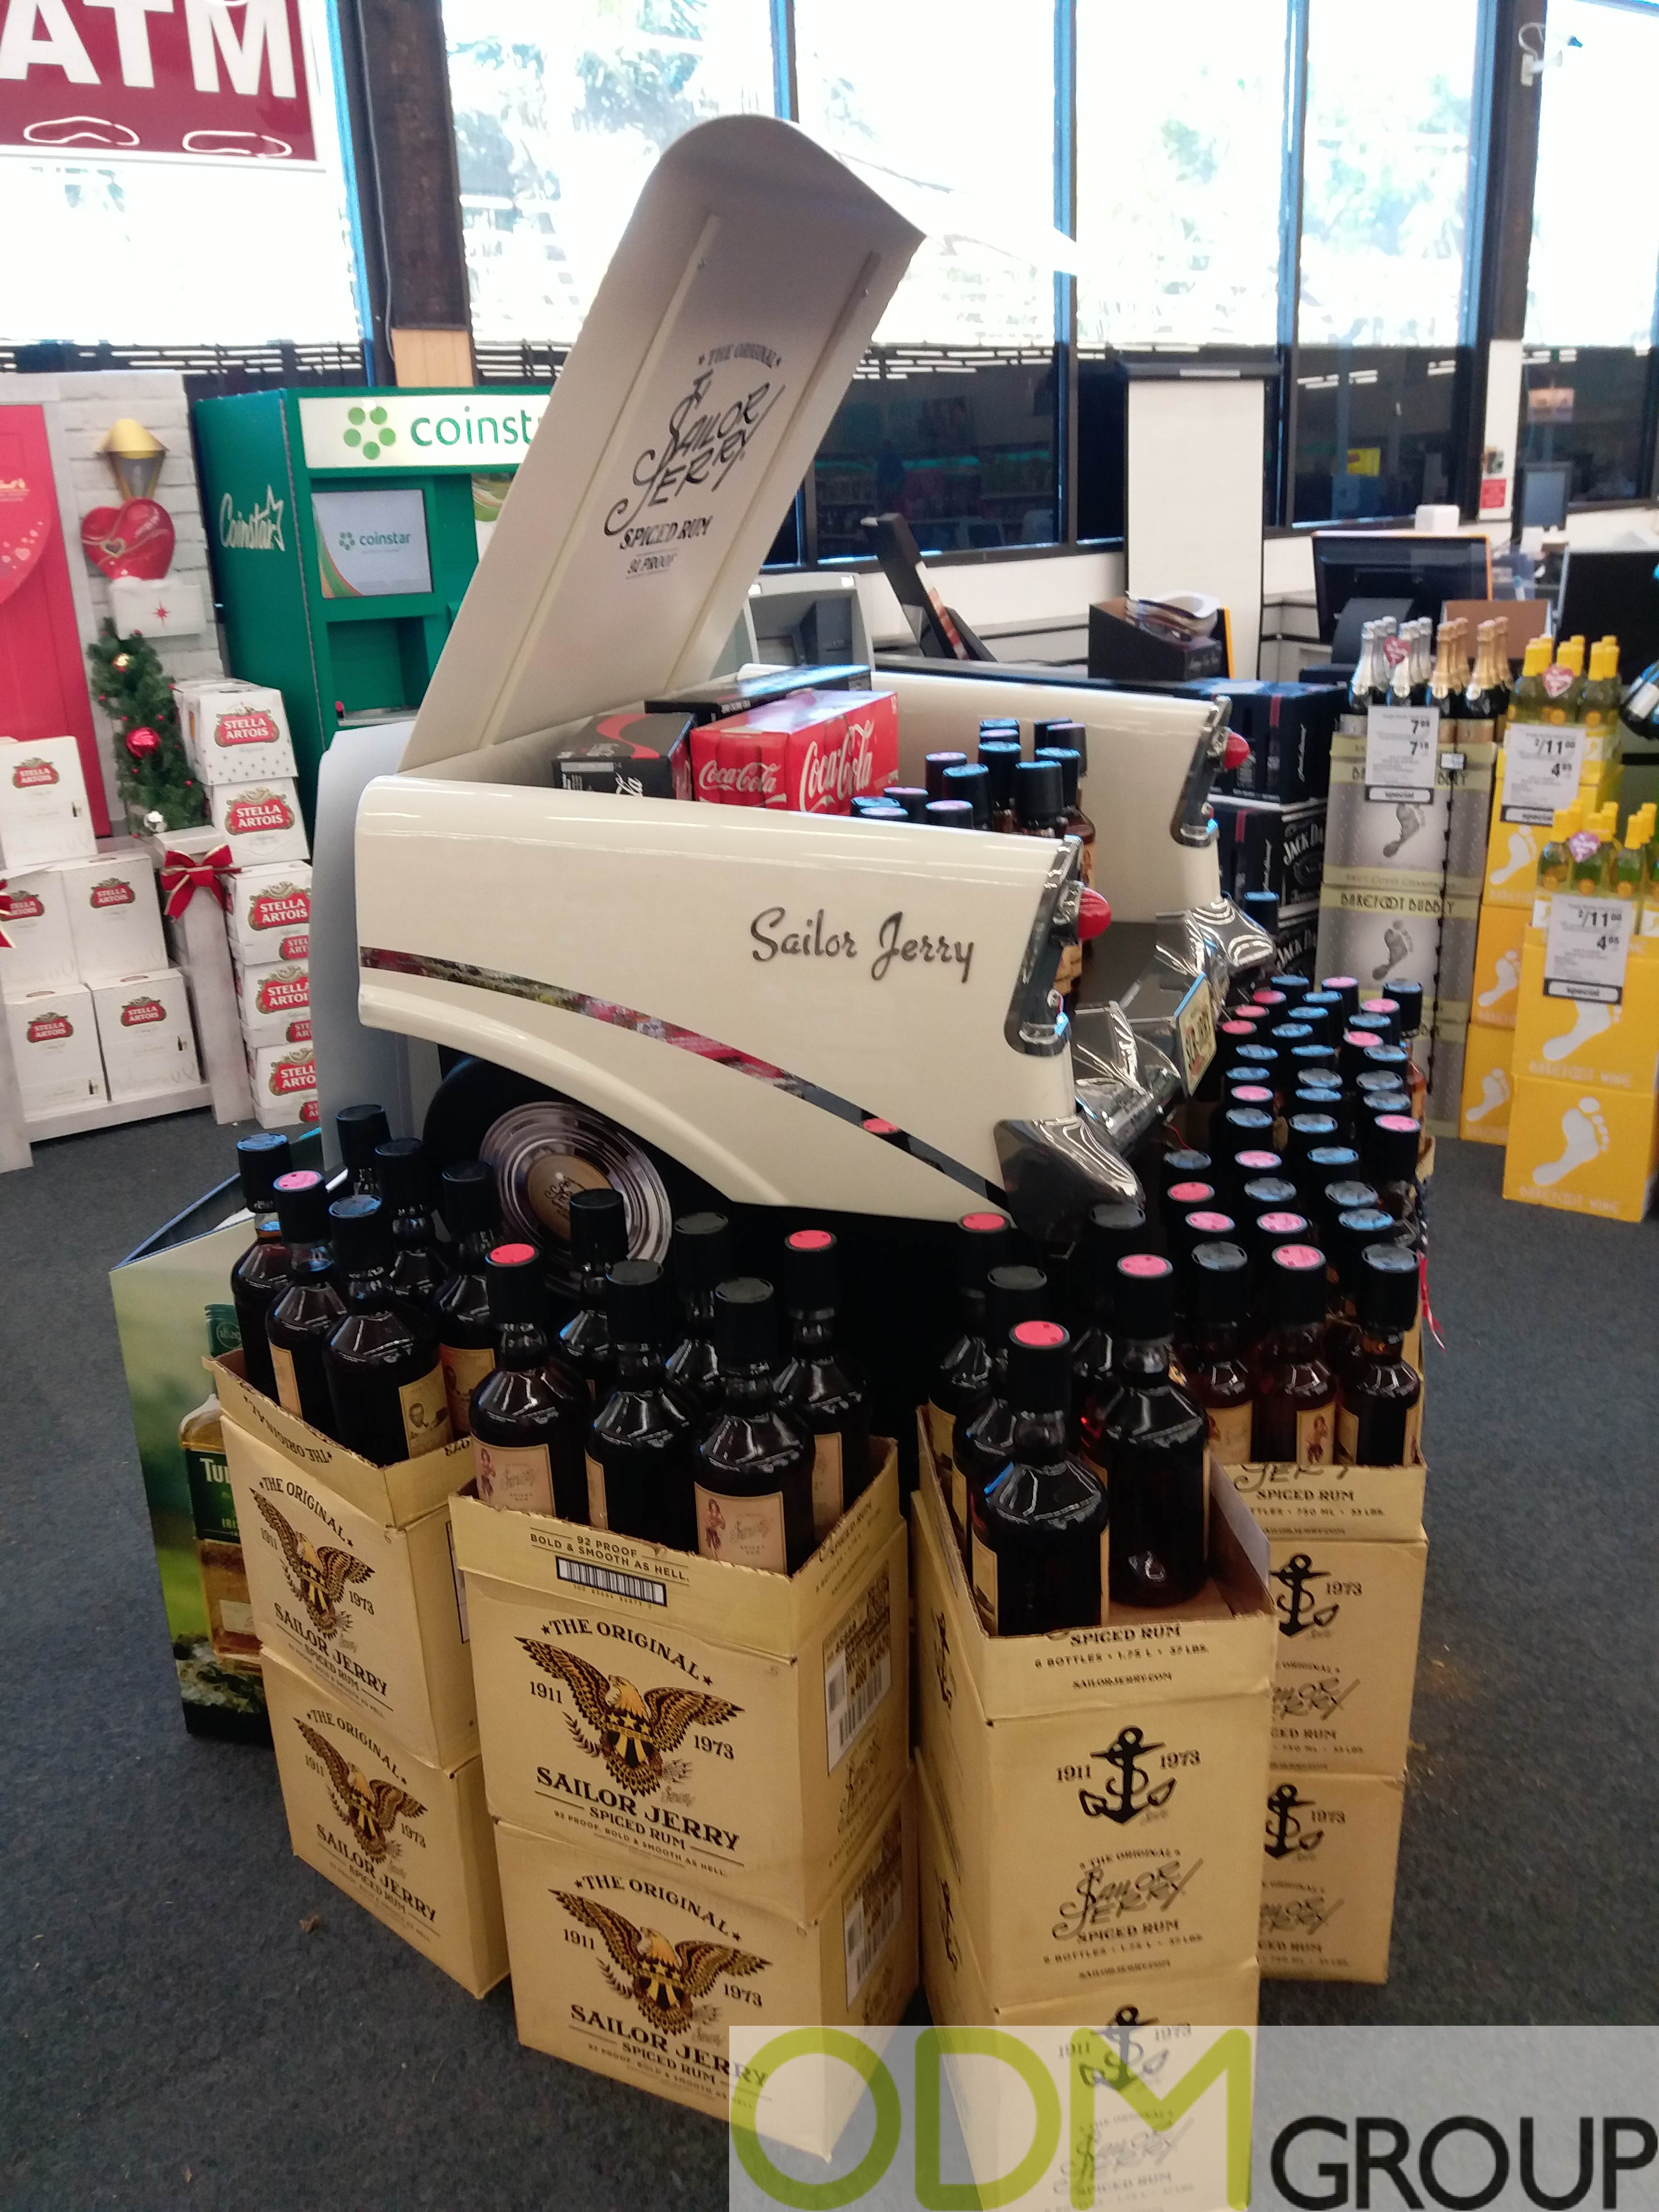 In-store Display - Vintage Car Display by Sailor Jerry